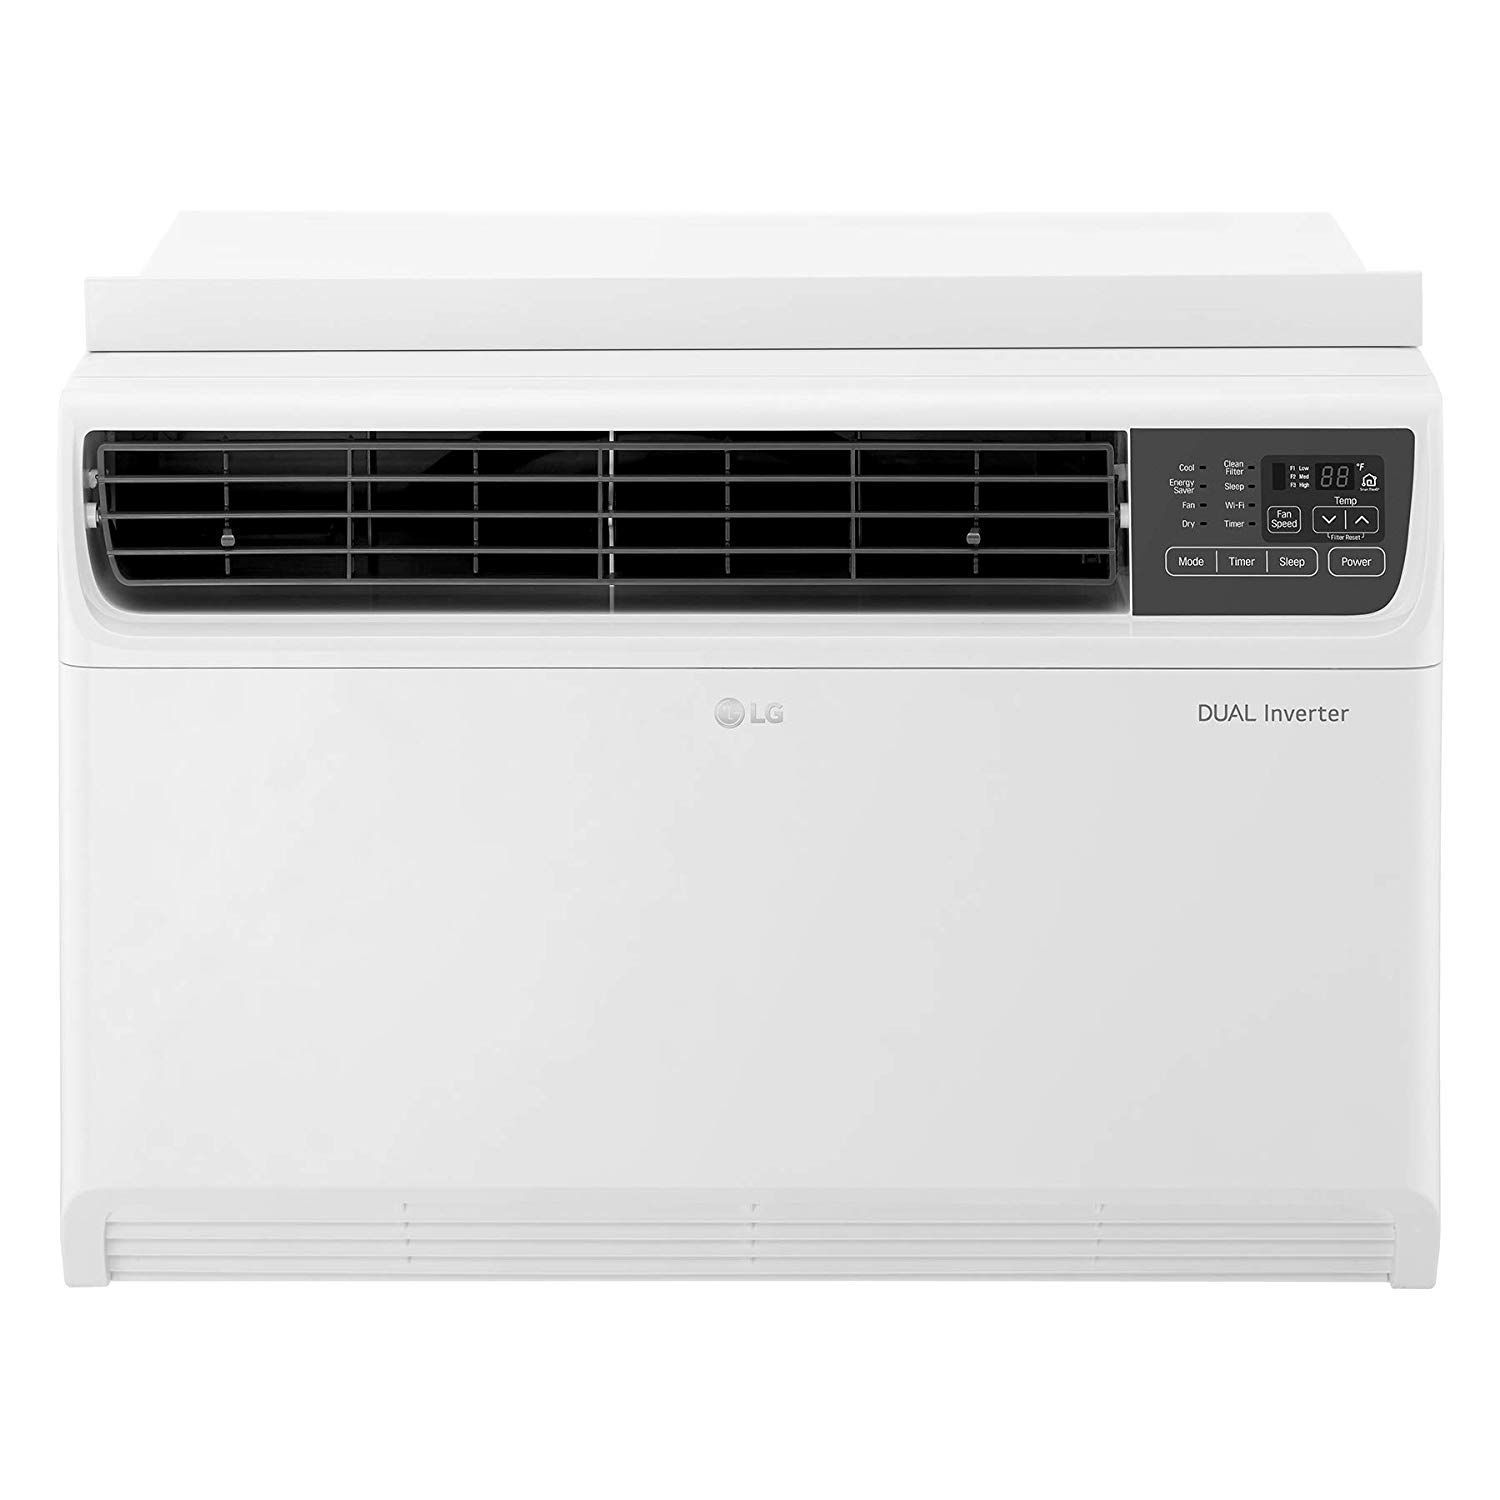 LG LW1517IVSM Dual Inverter Smart Window Air Conditioner